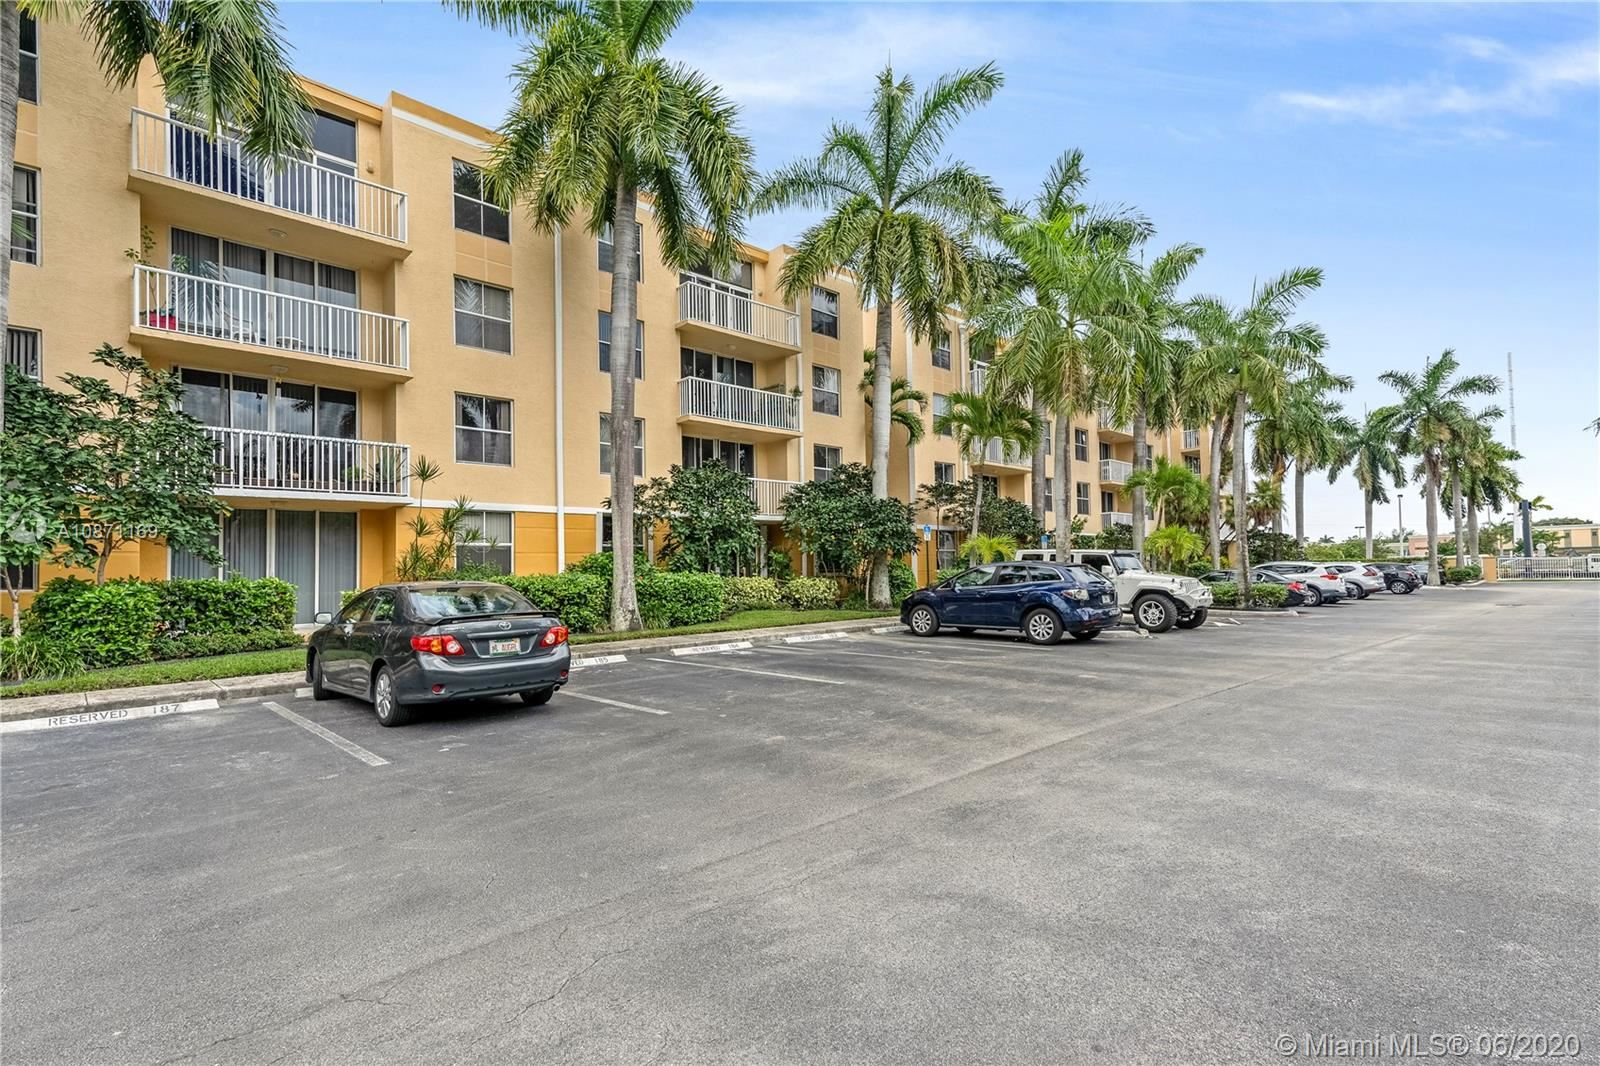 Photo of 1450 SE 3rd Ave #405, Dania Beach, FL 33004 (MLS # A10871169)